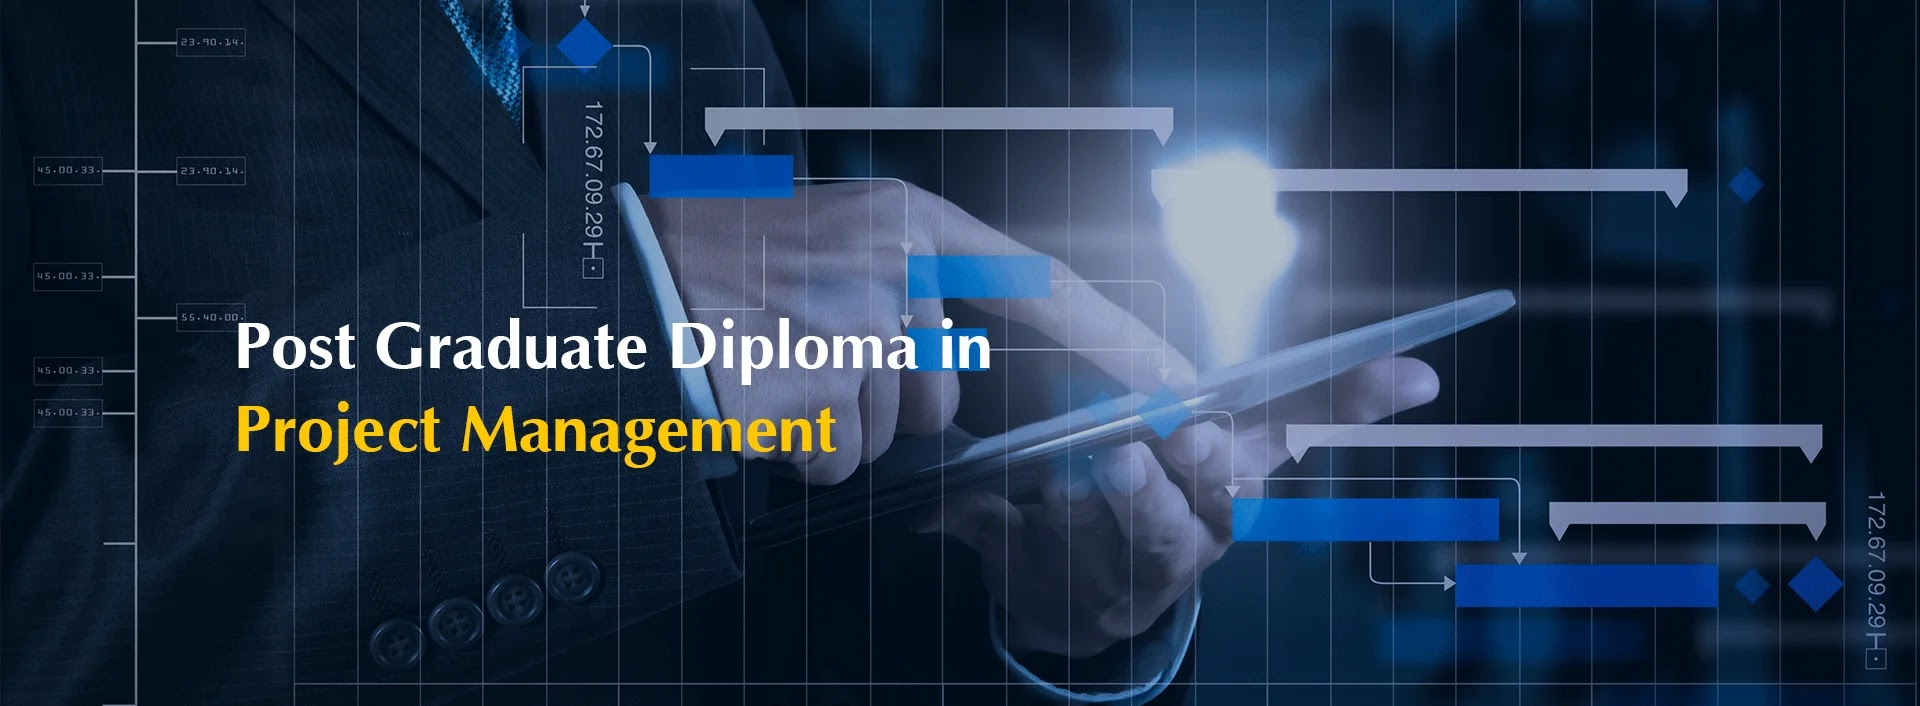 Affordable PG Diploma in Project Management